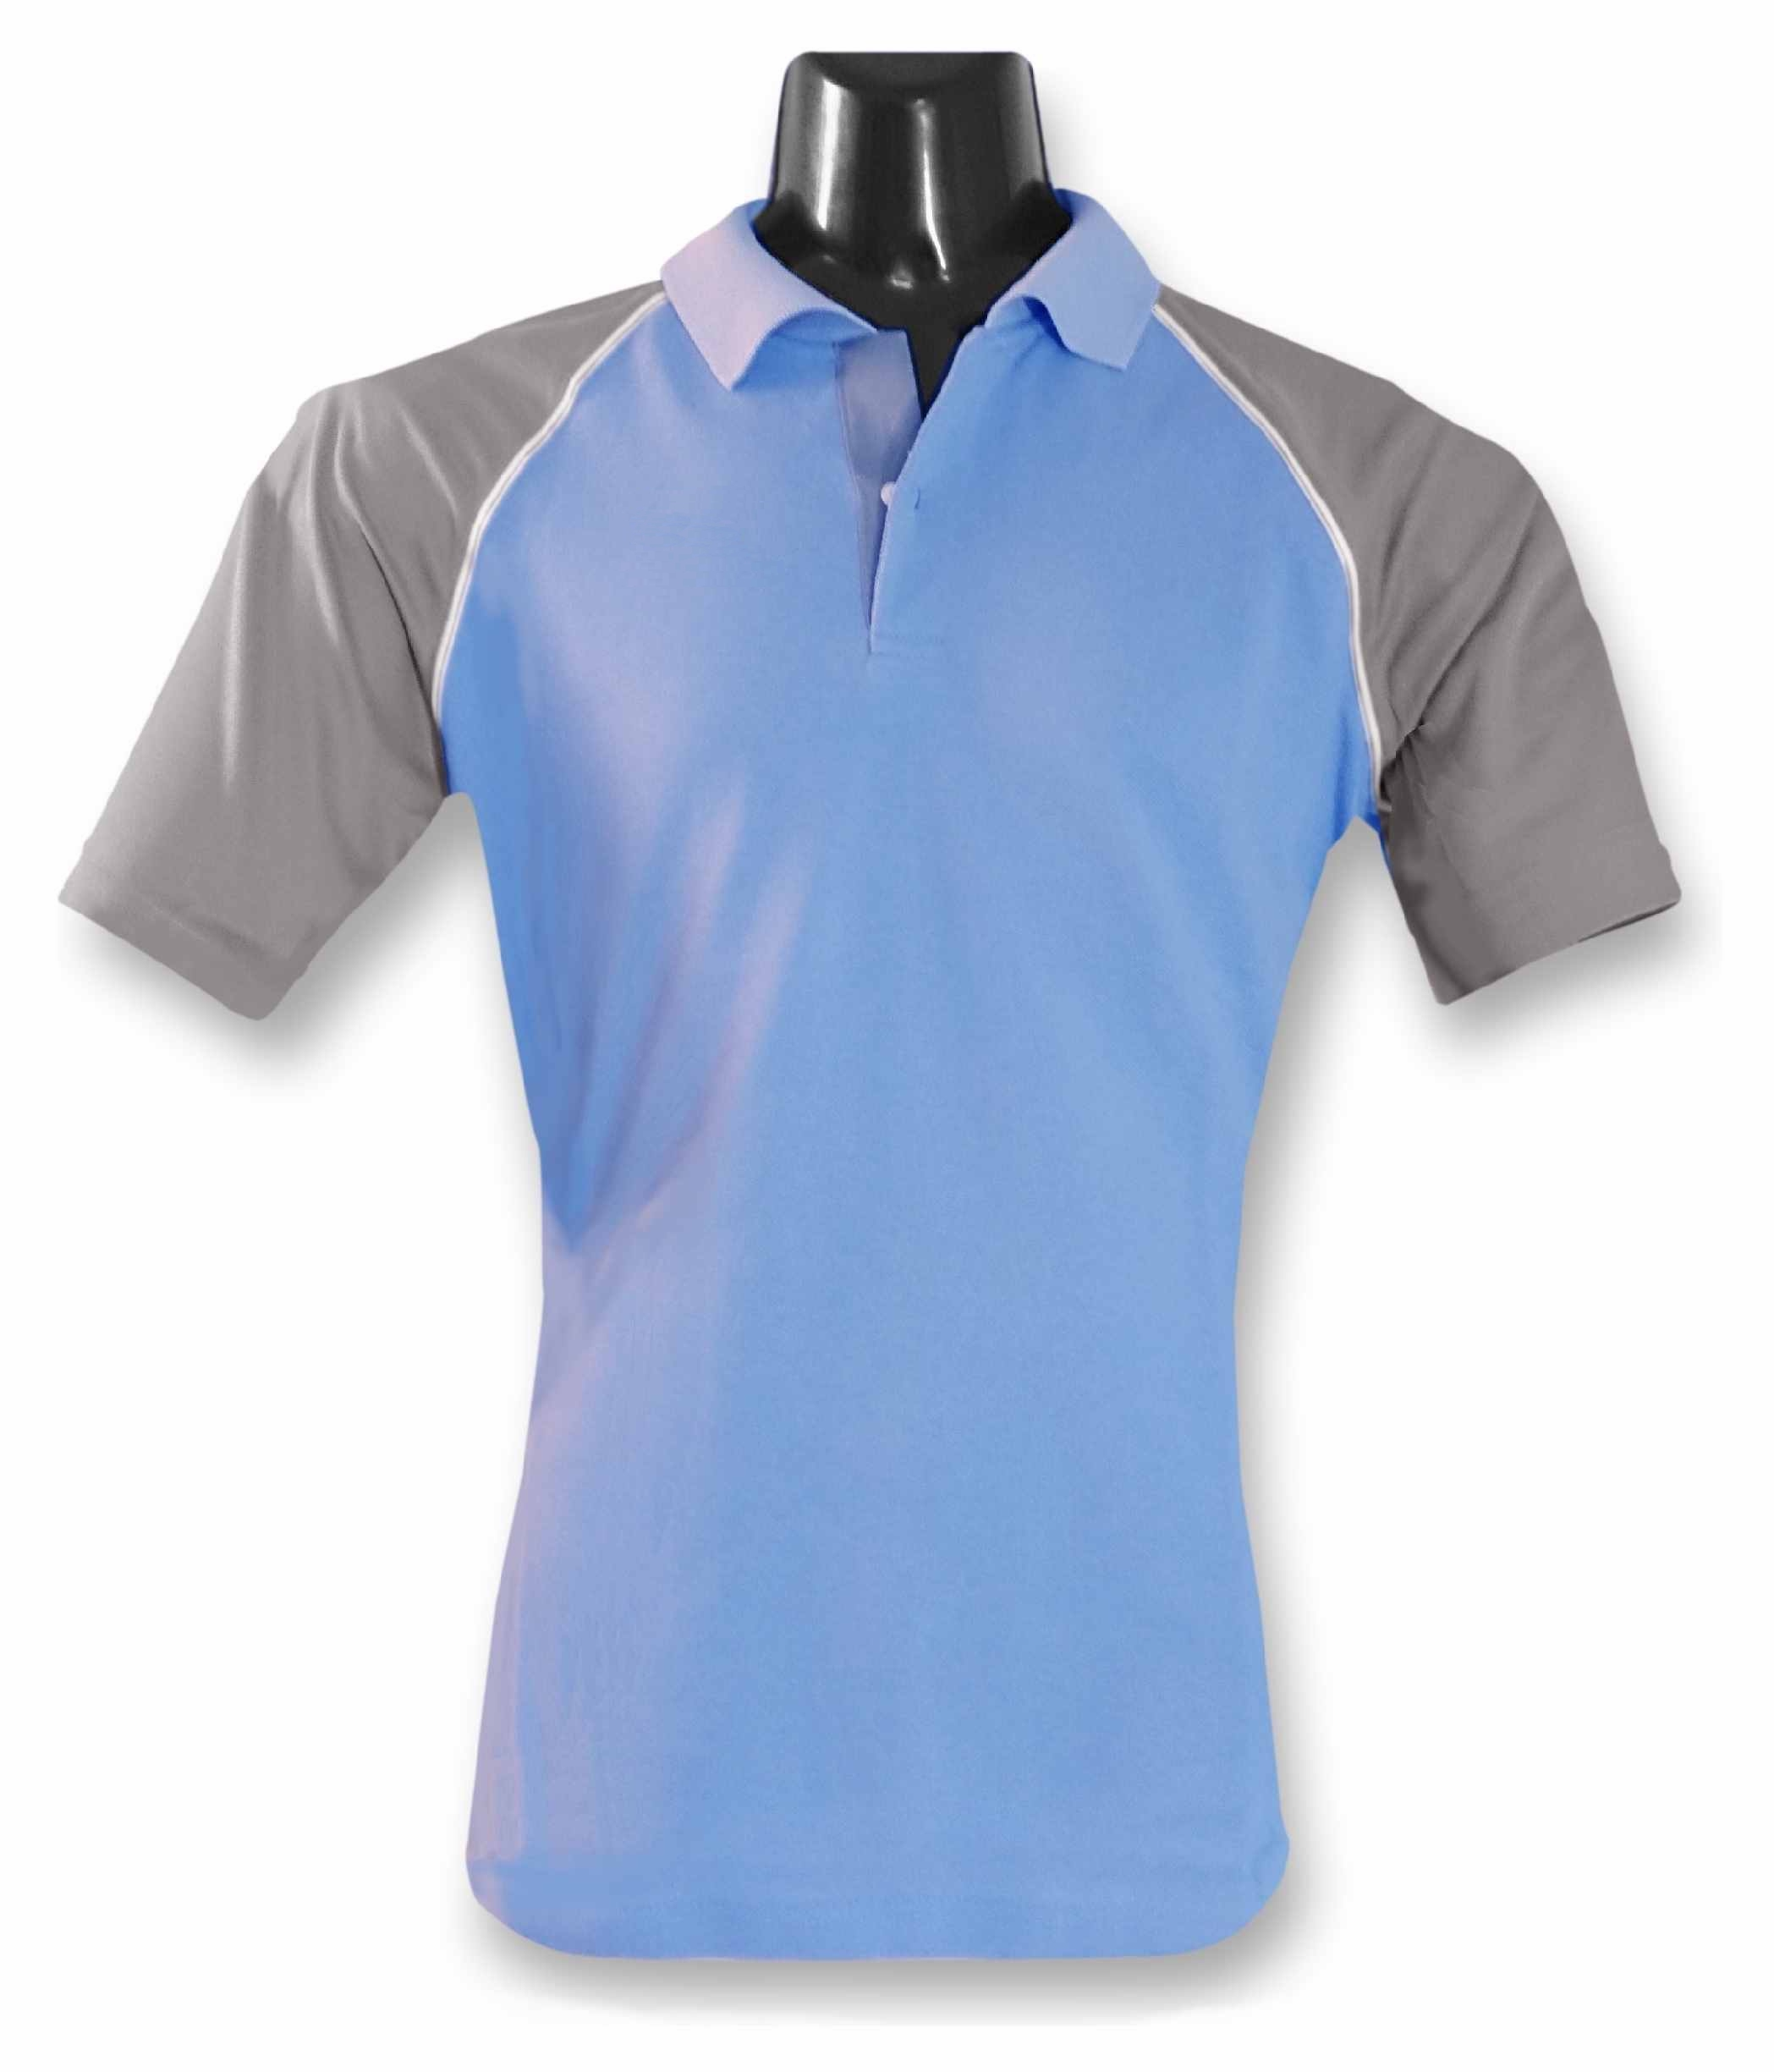 C-Star Poloshirt  (sky-grey) 15,53 €